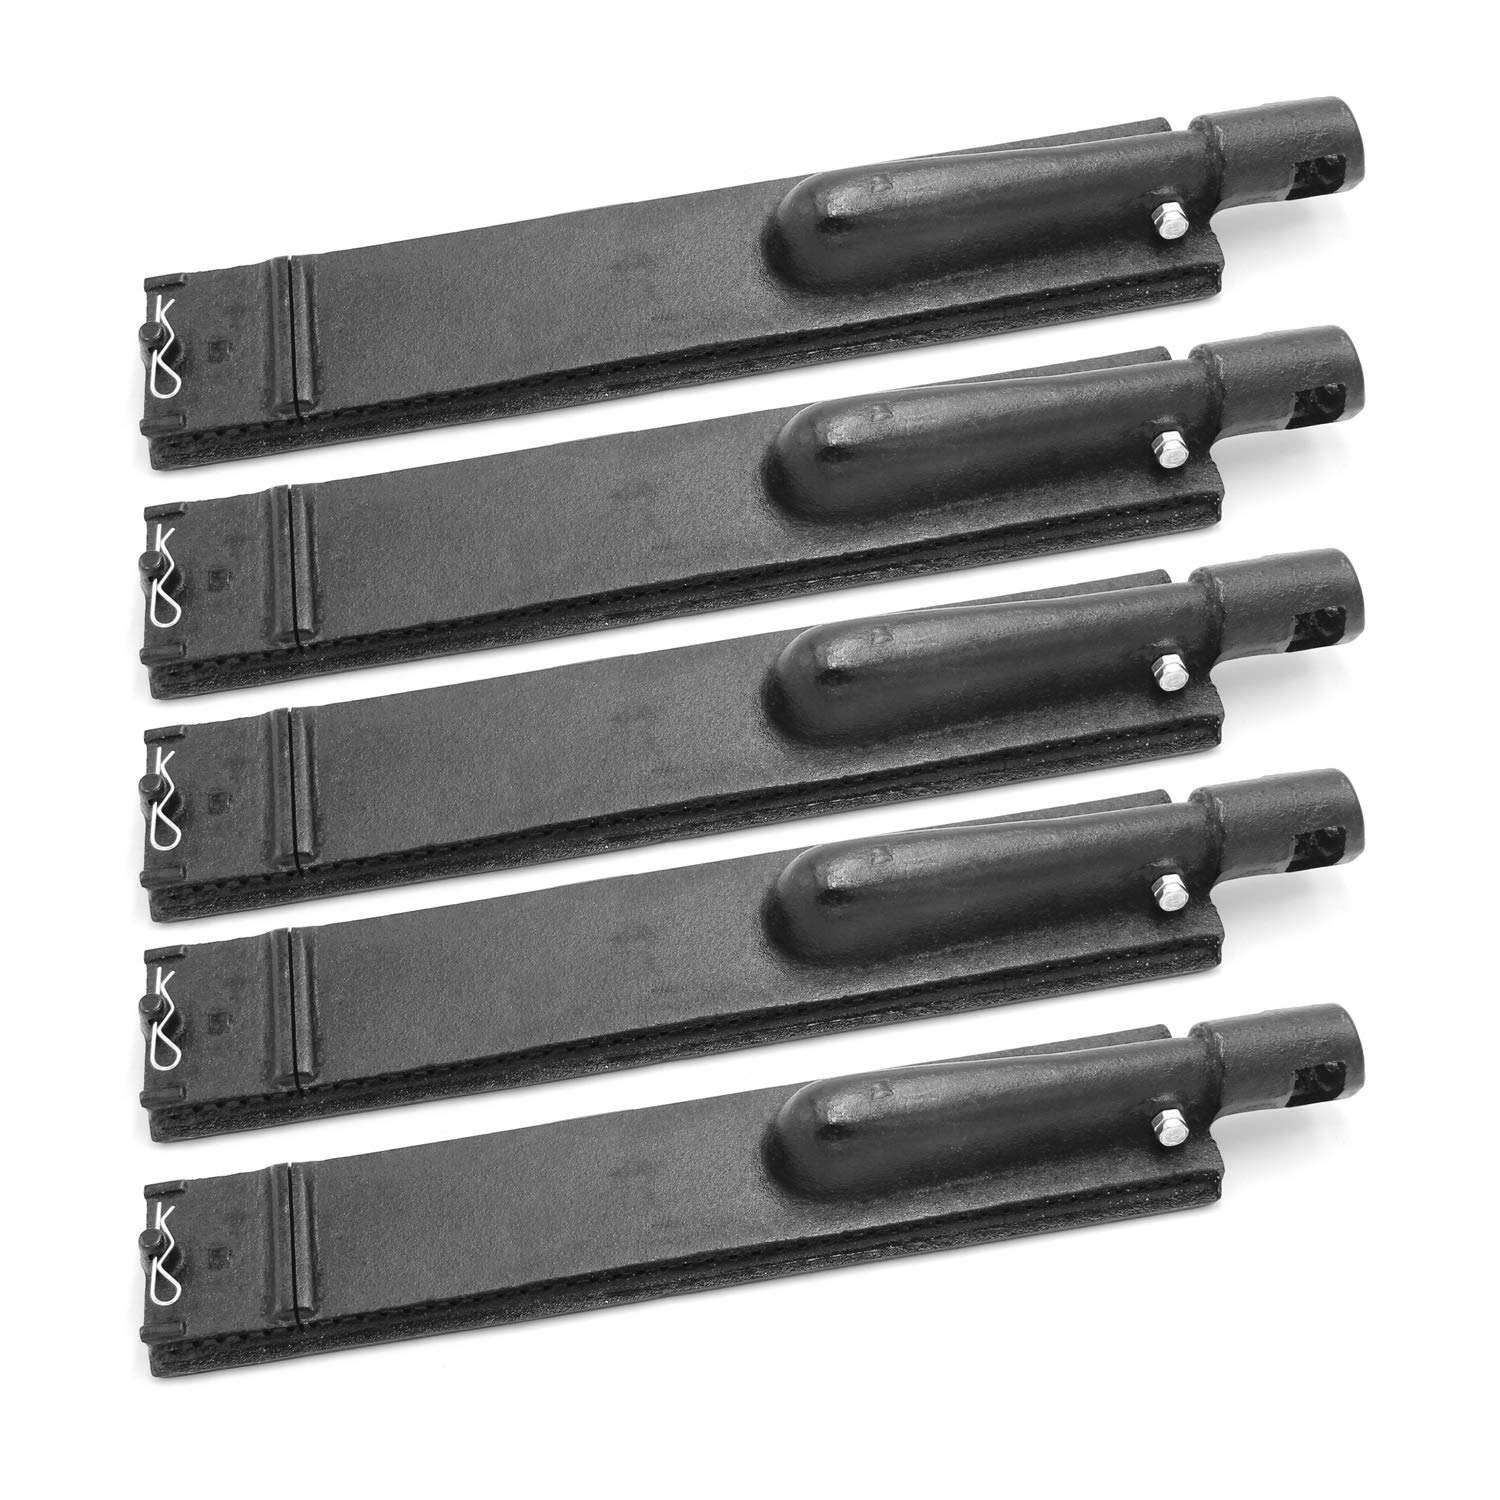 Hongso 15 3/4 Inches Cast Iron Gas Grill Burner Tube Kit Set Replacement Parts for Old Bull 4 Burner BBQ, Nexgrill 720-0026, 720-0057, 720-0058, 720-0145, Aussie, Bakers and Chefs, CBC301 (5-Pack)